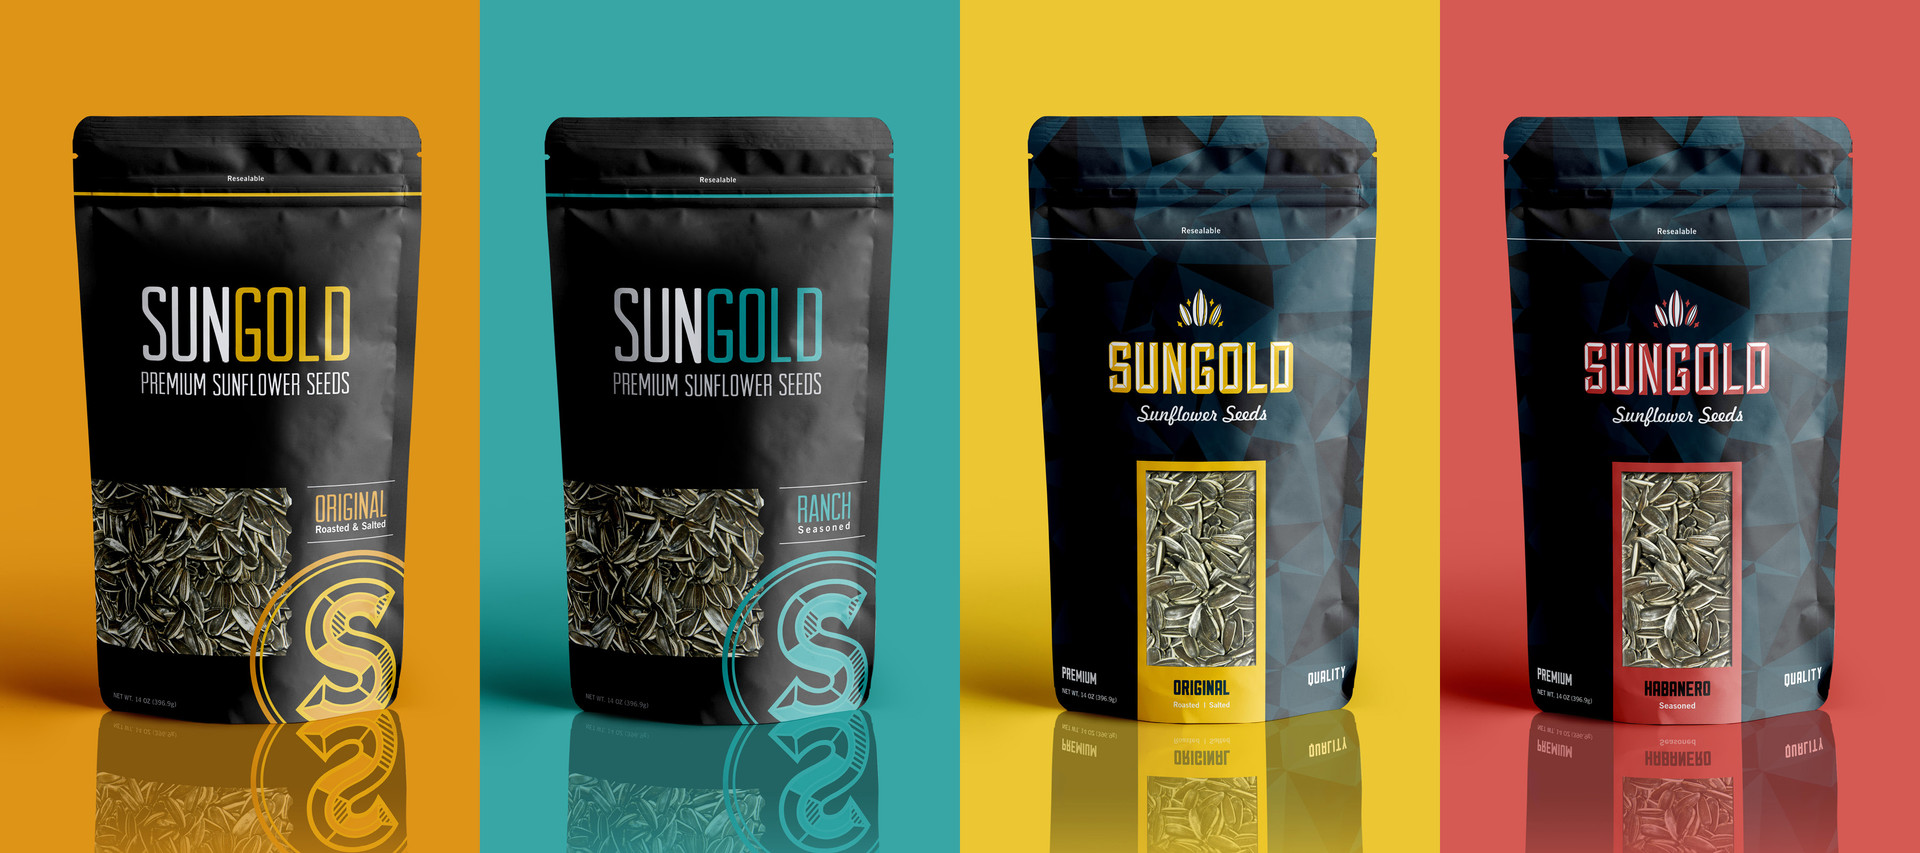 Sungold Packaging Designs